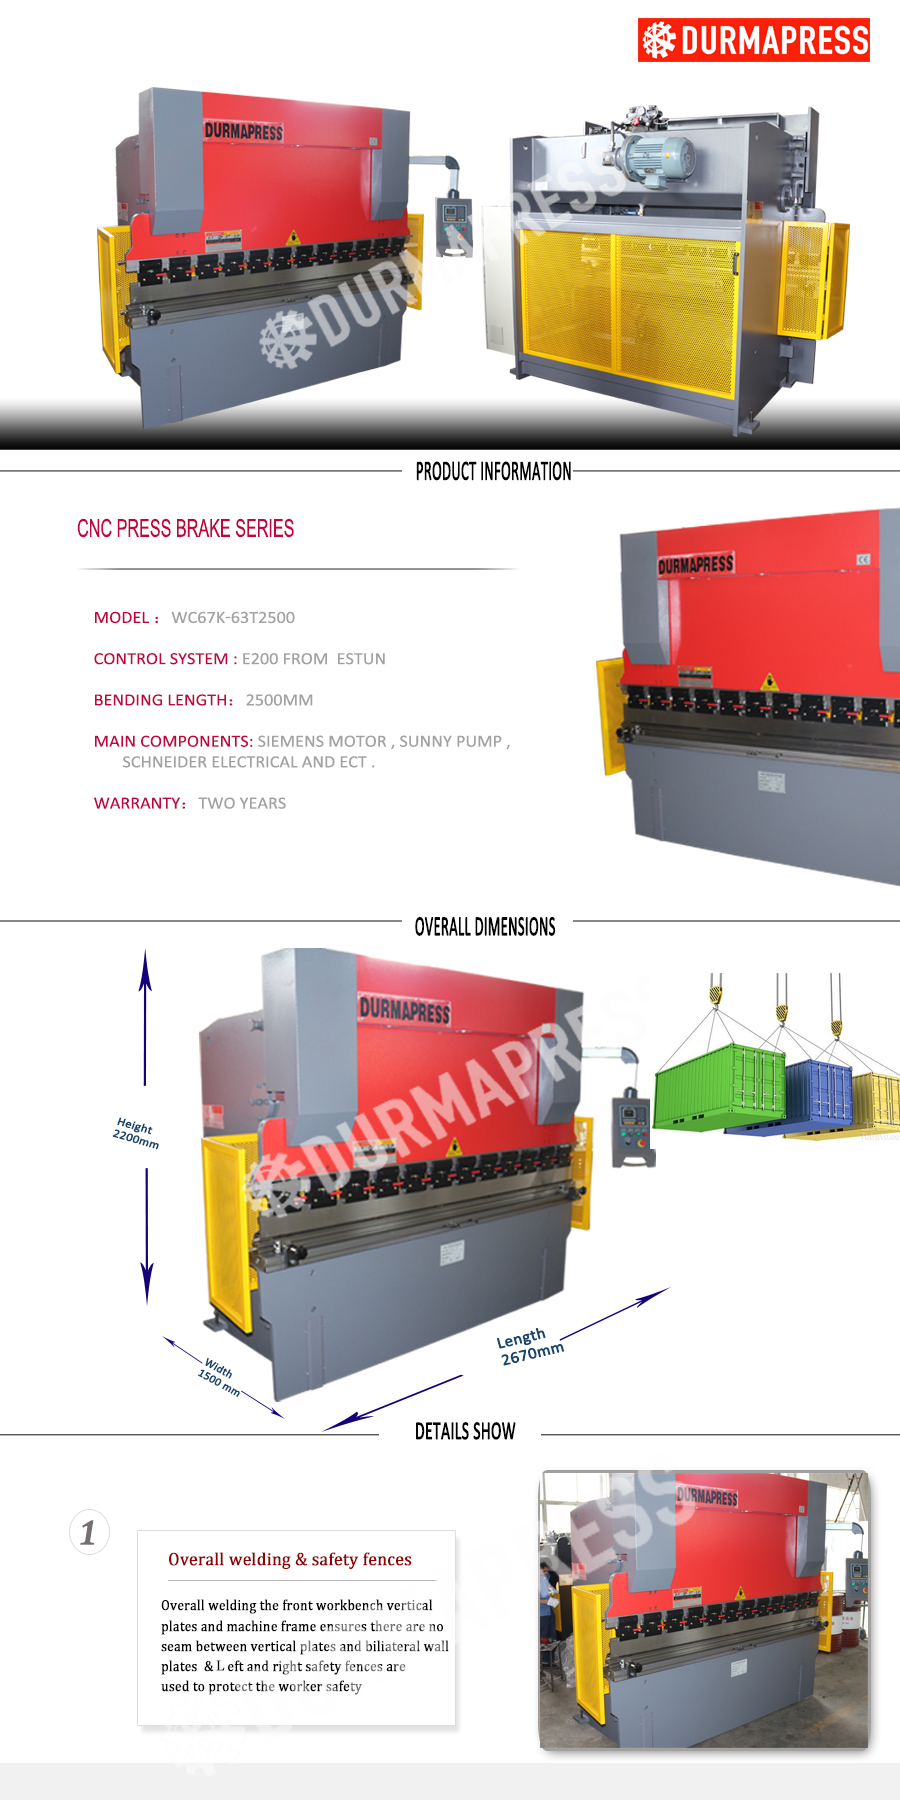 Wc67k 63t3200 Cnc Press Brake With E200 Control System Xy Axis Simple Hydraulic How To Decompression In 63t2500 Details